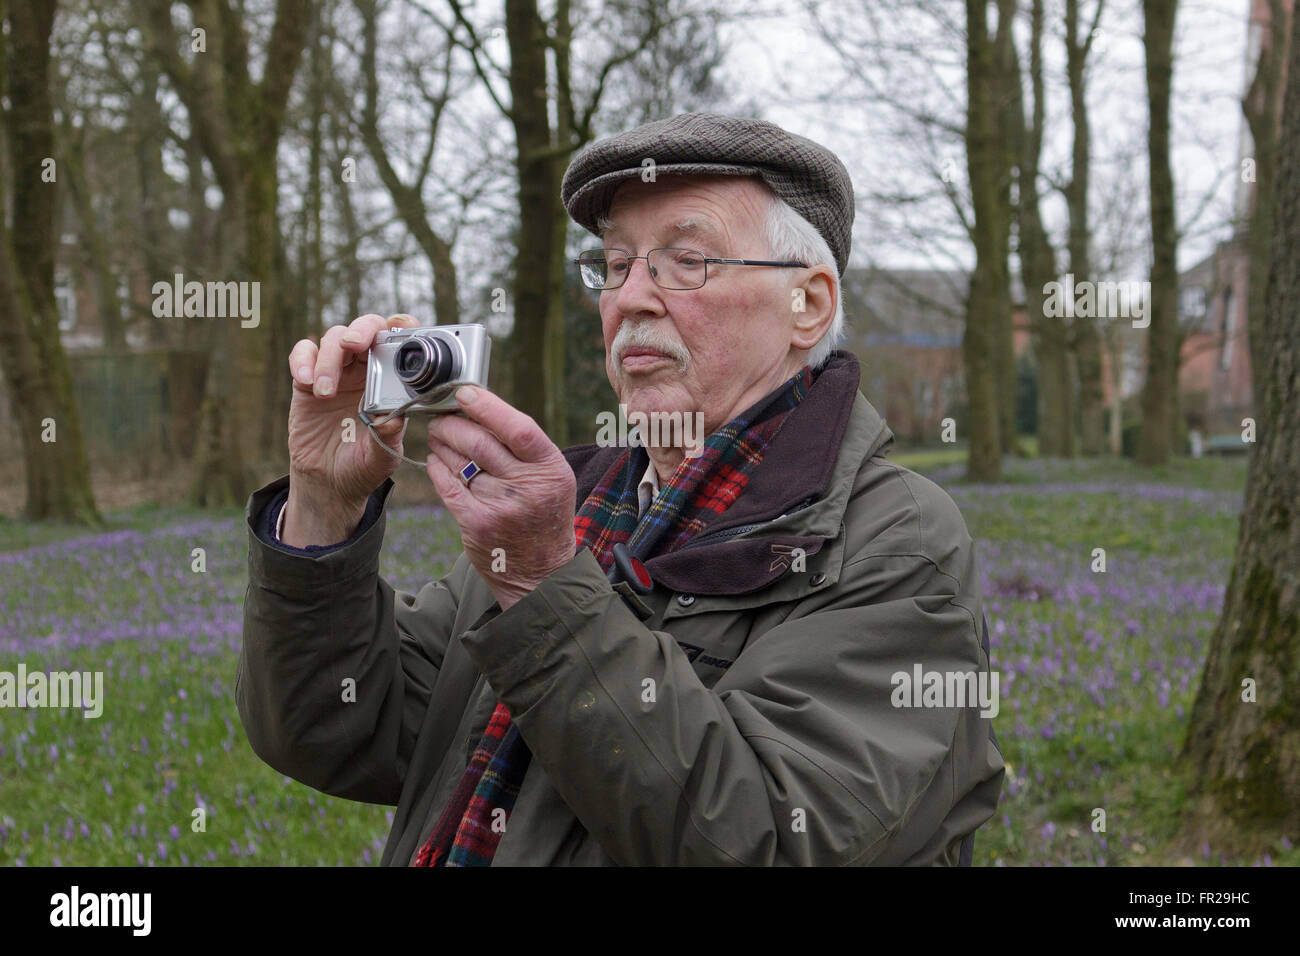 elderly man taking photos at the castle gardens, Husum, Schleswig-Holstein, Germany - Stock Image